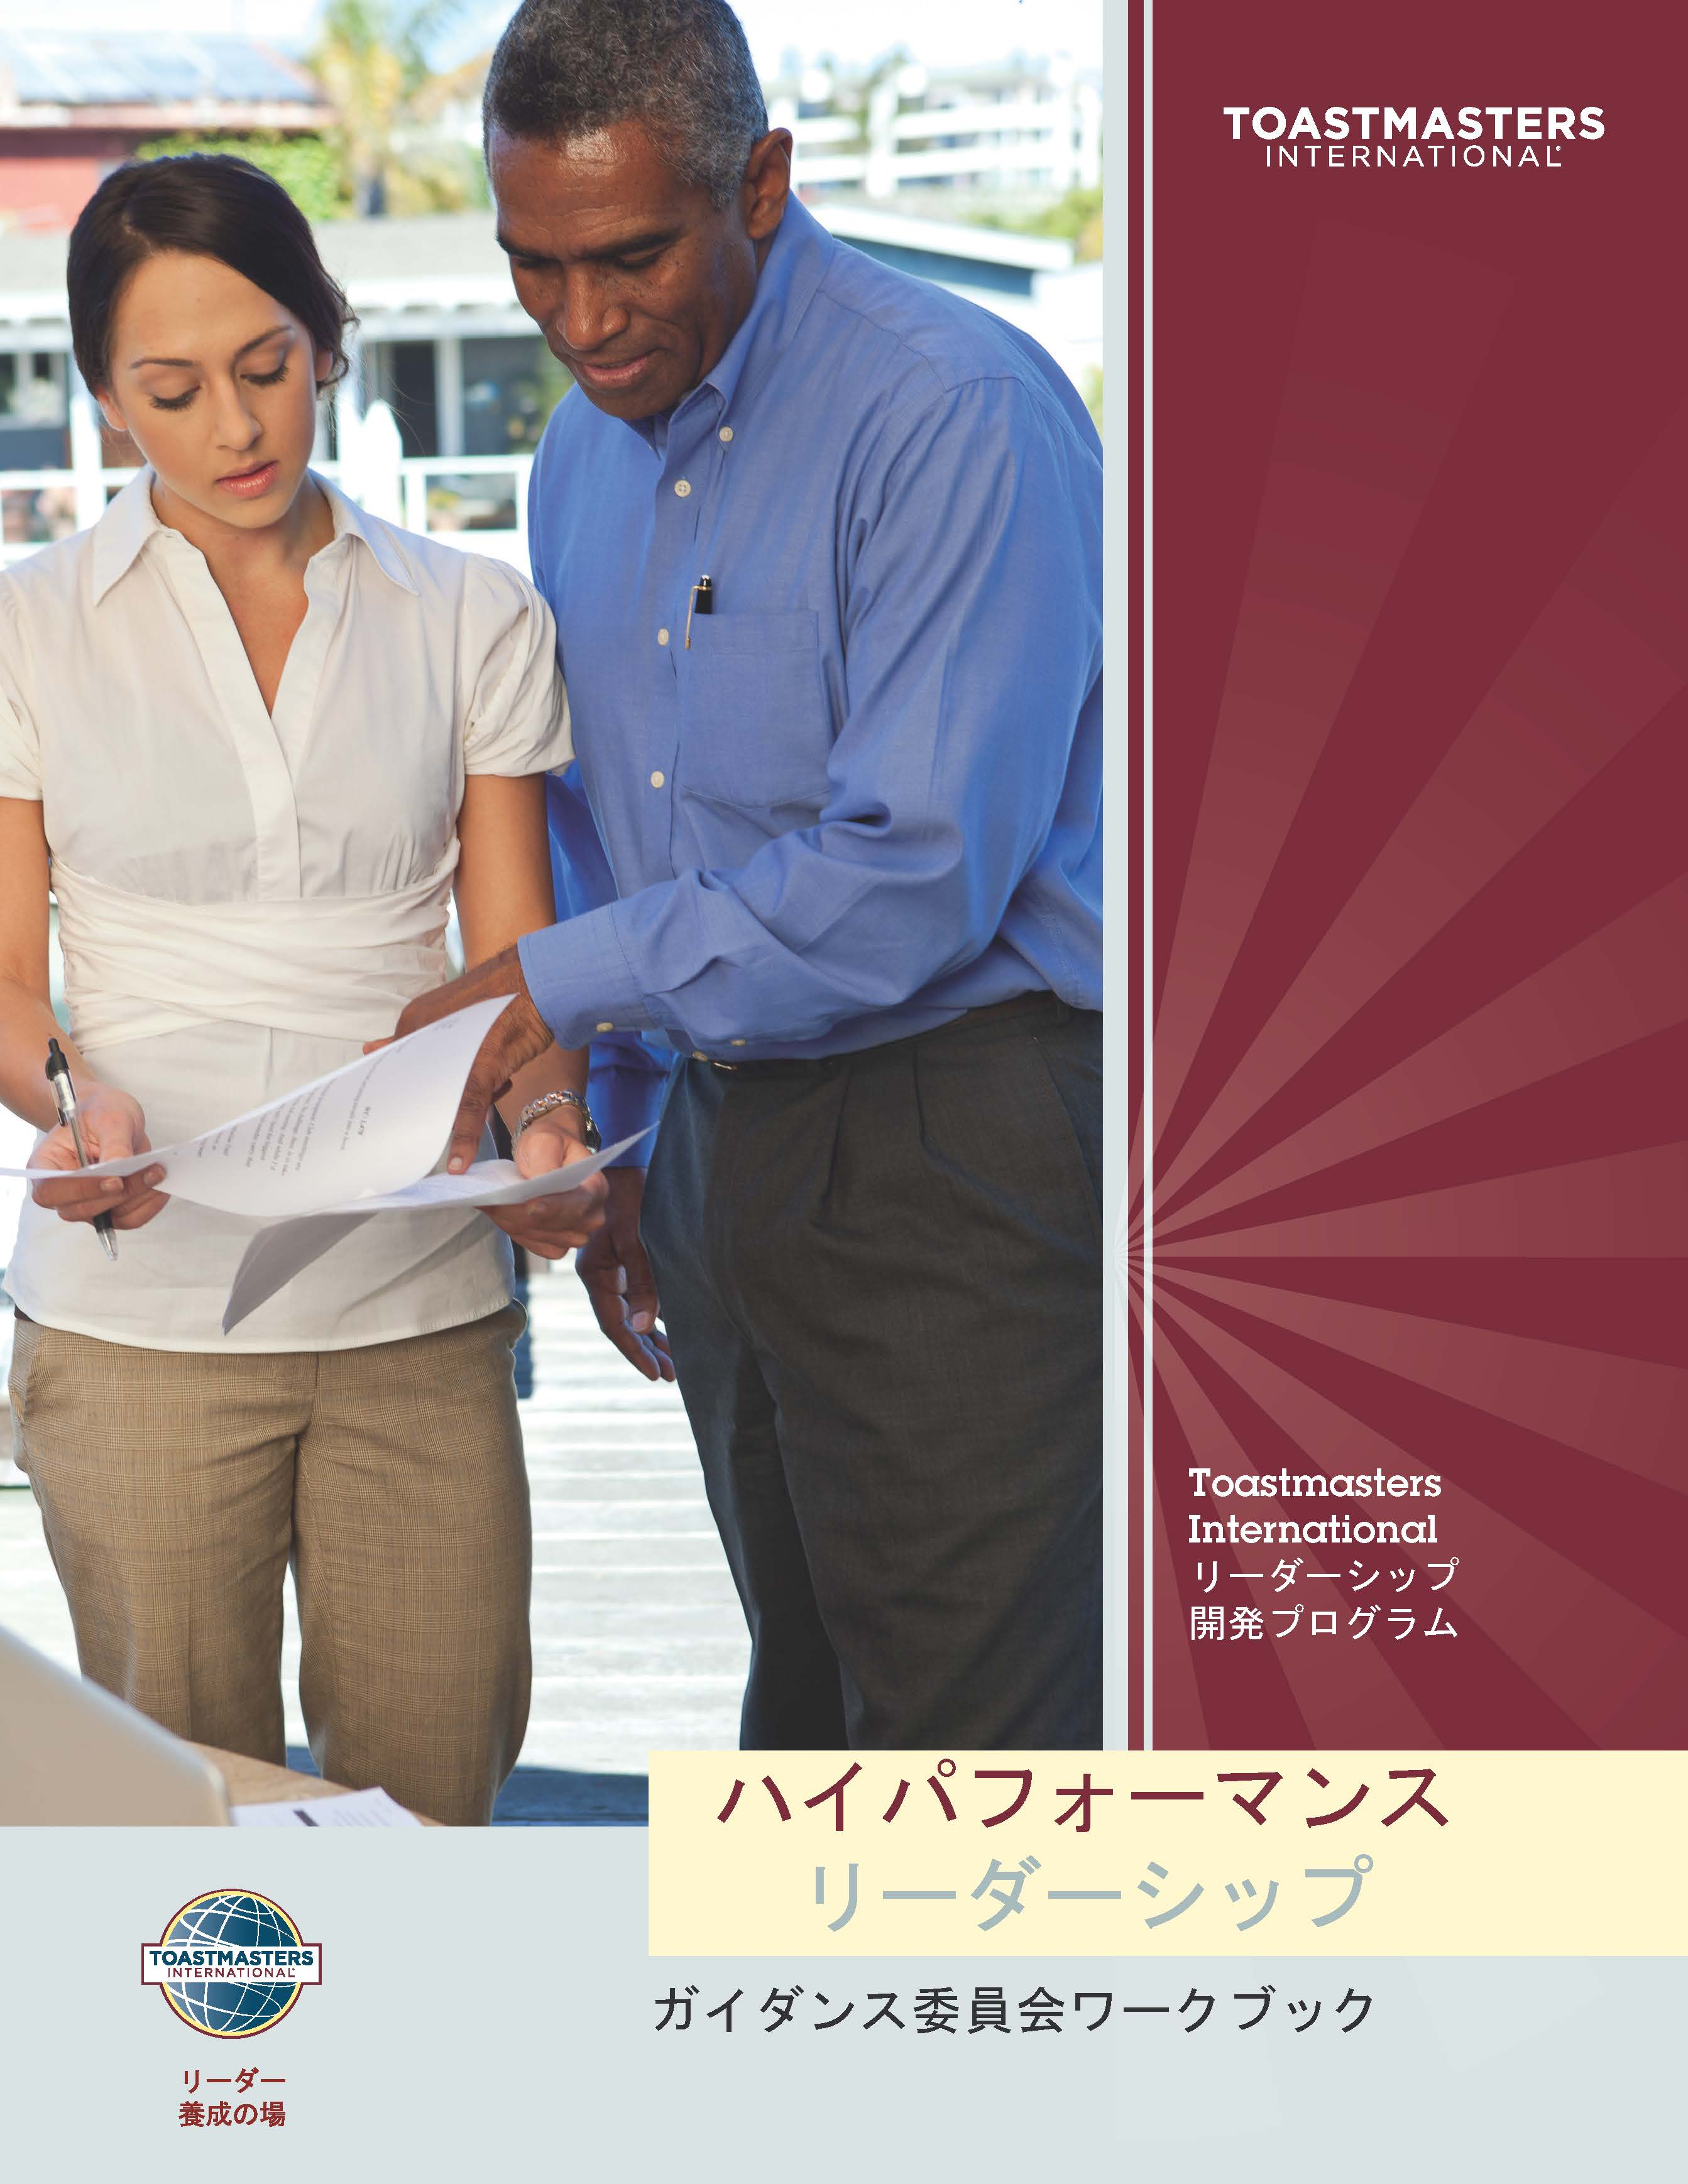 High Performance Leadership: Guidance Committee Workbook (Japanese)